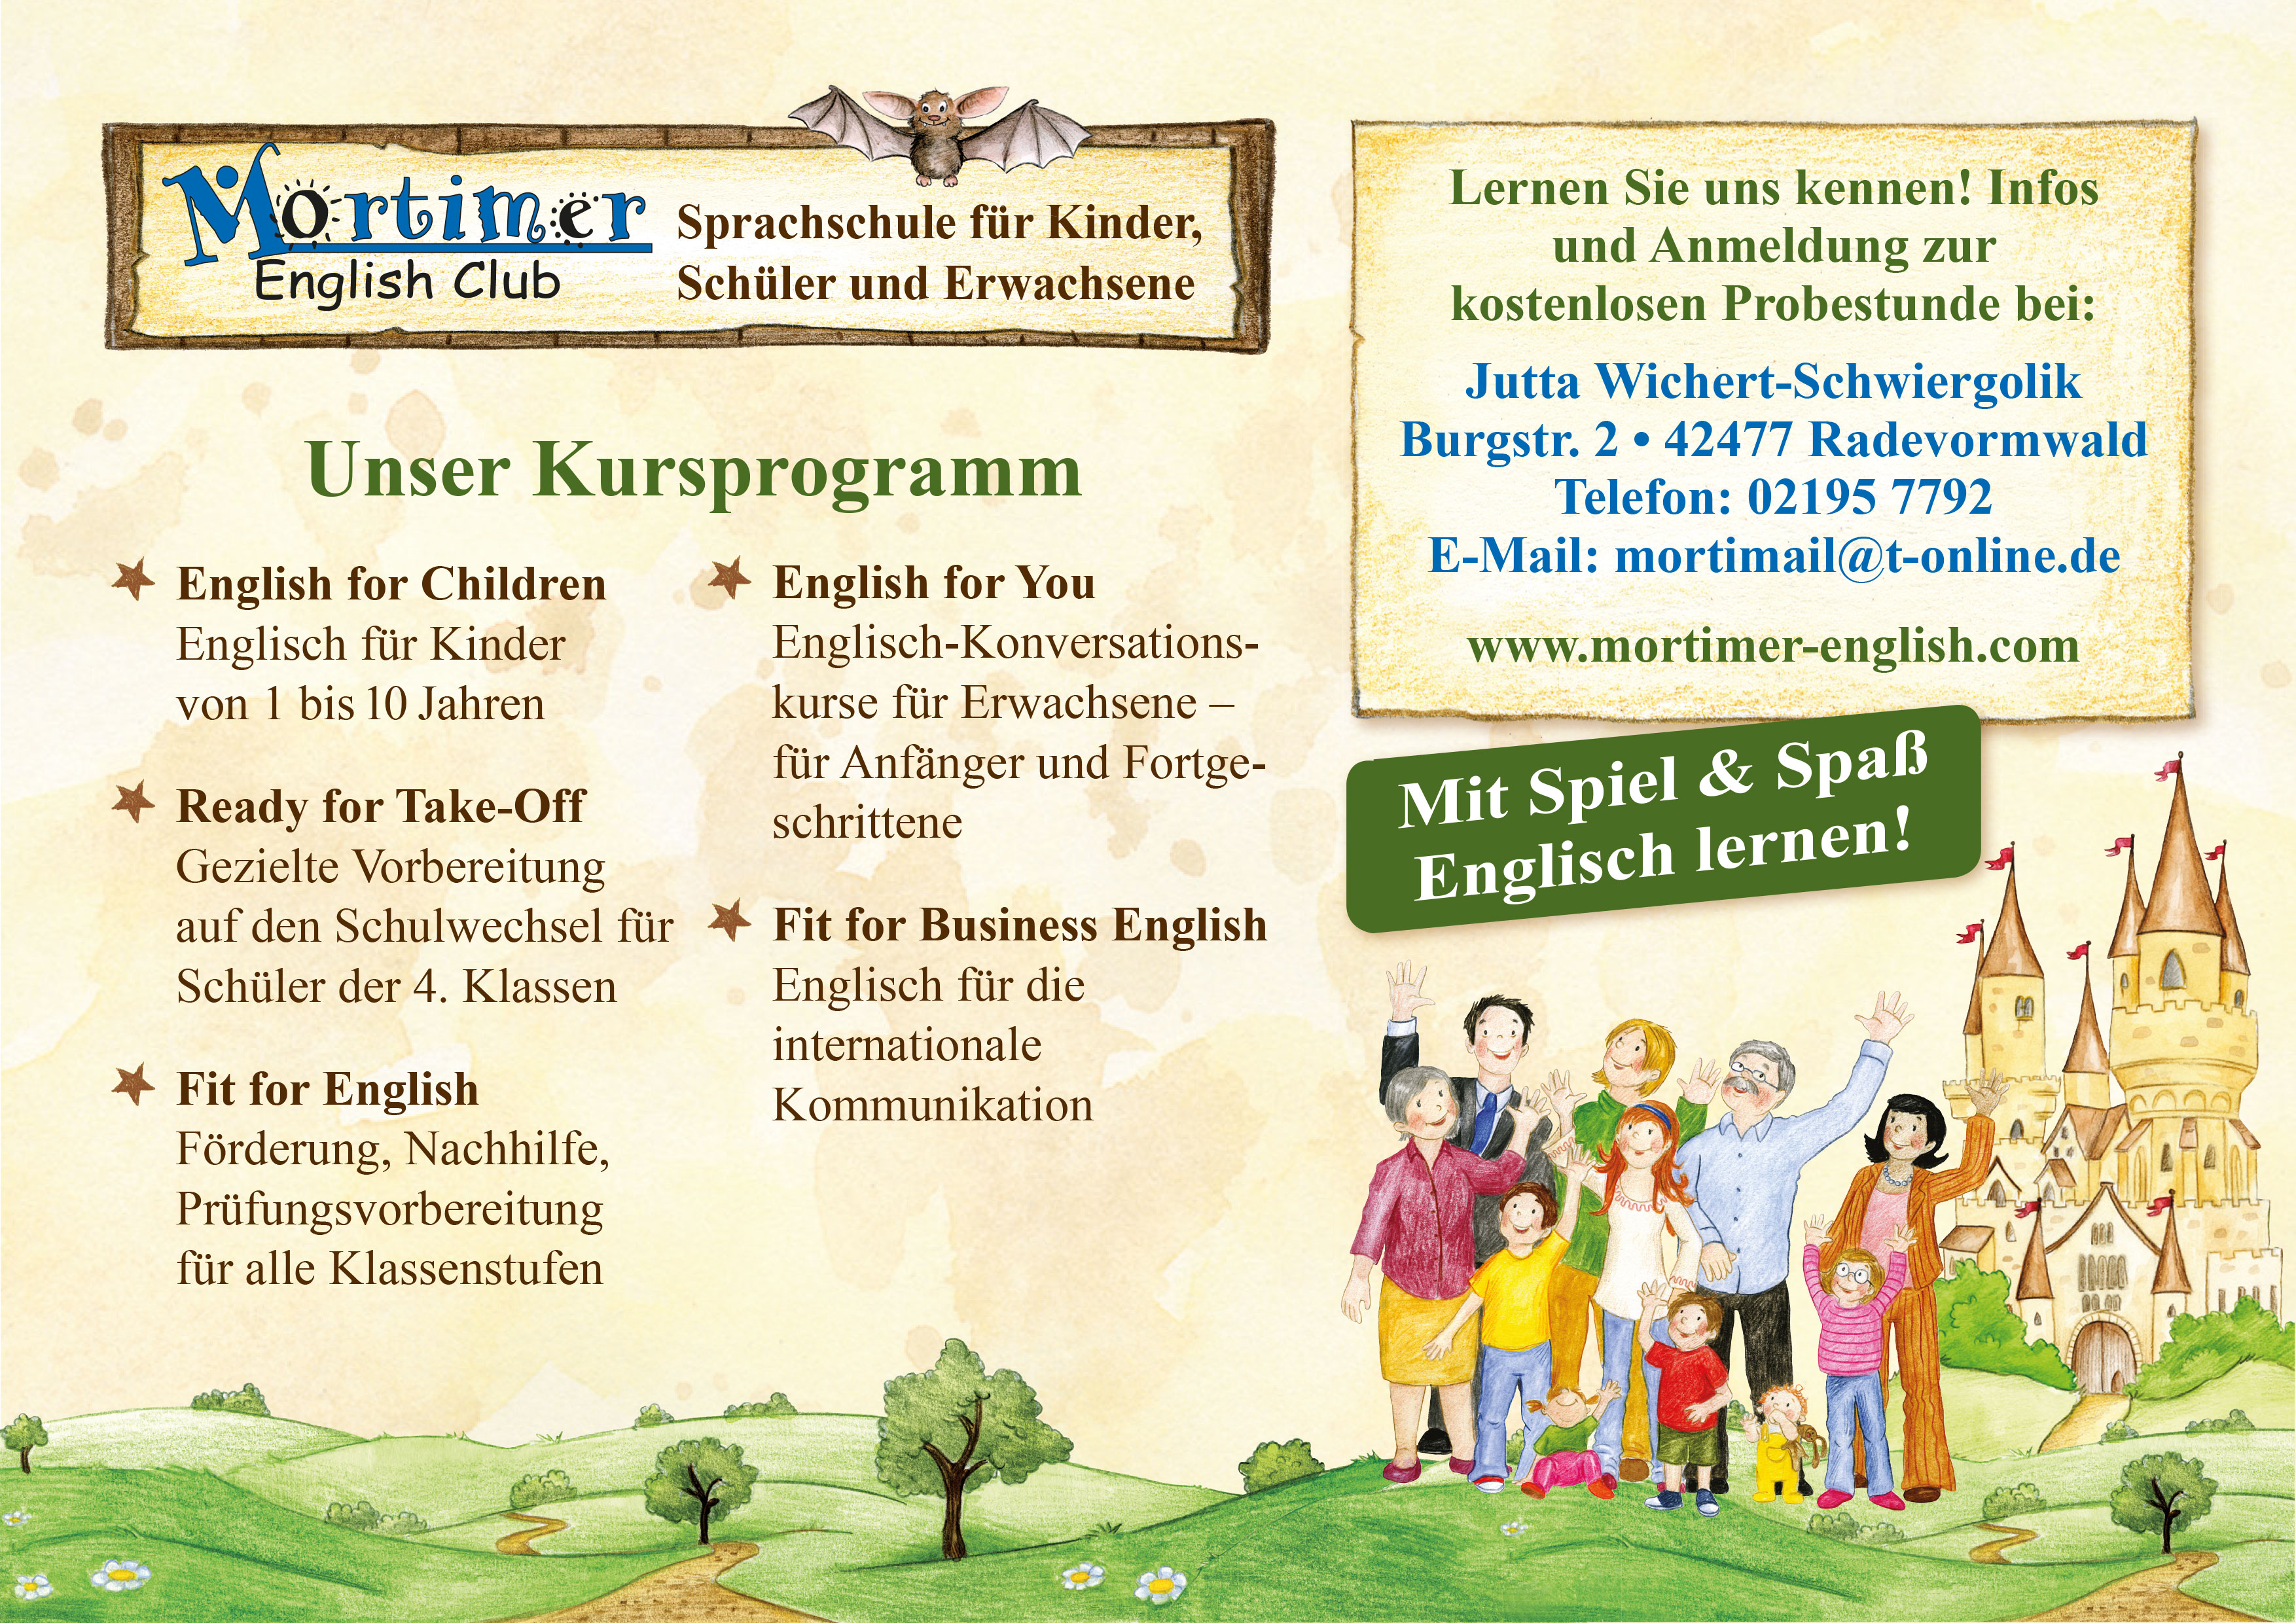 Sprachschule Mortimer English Club